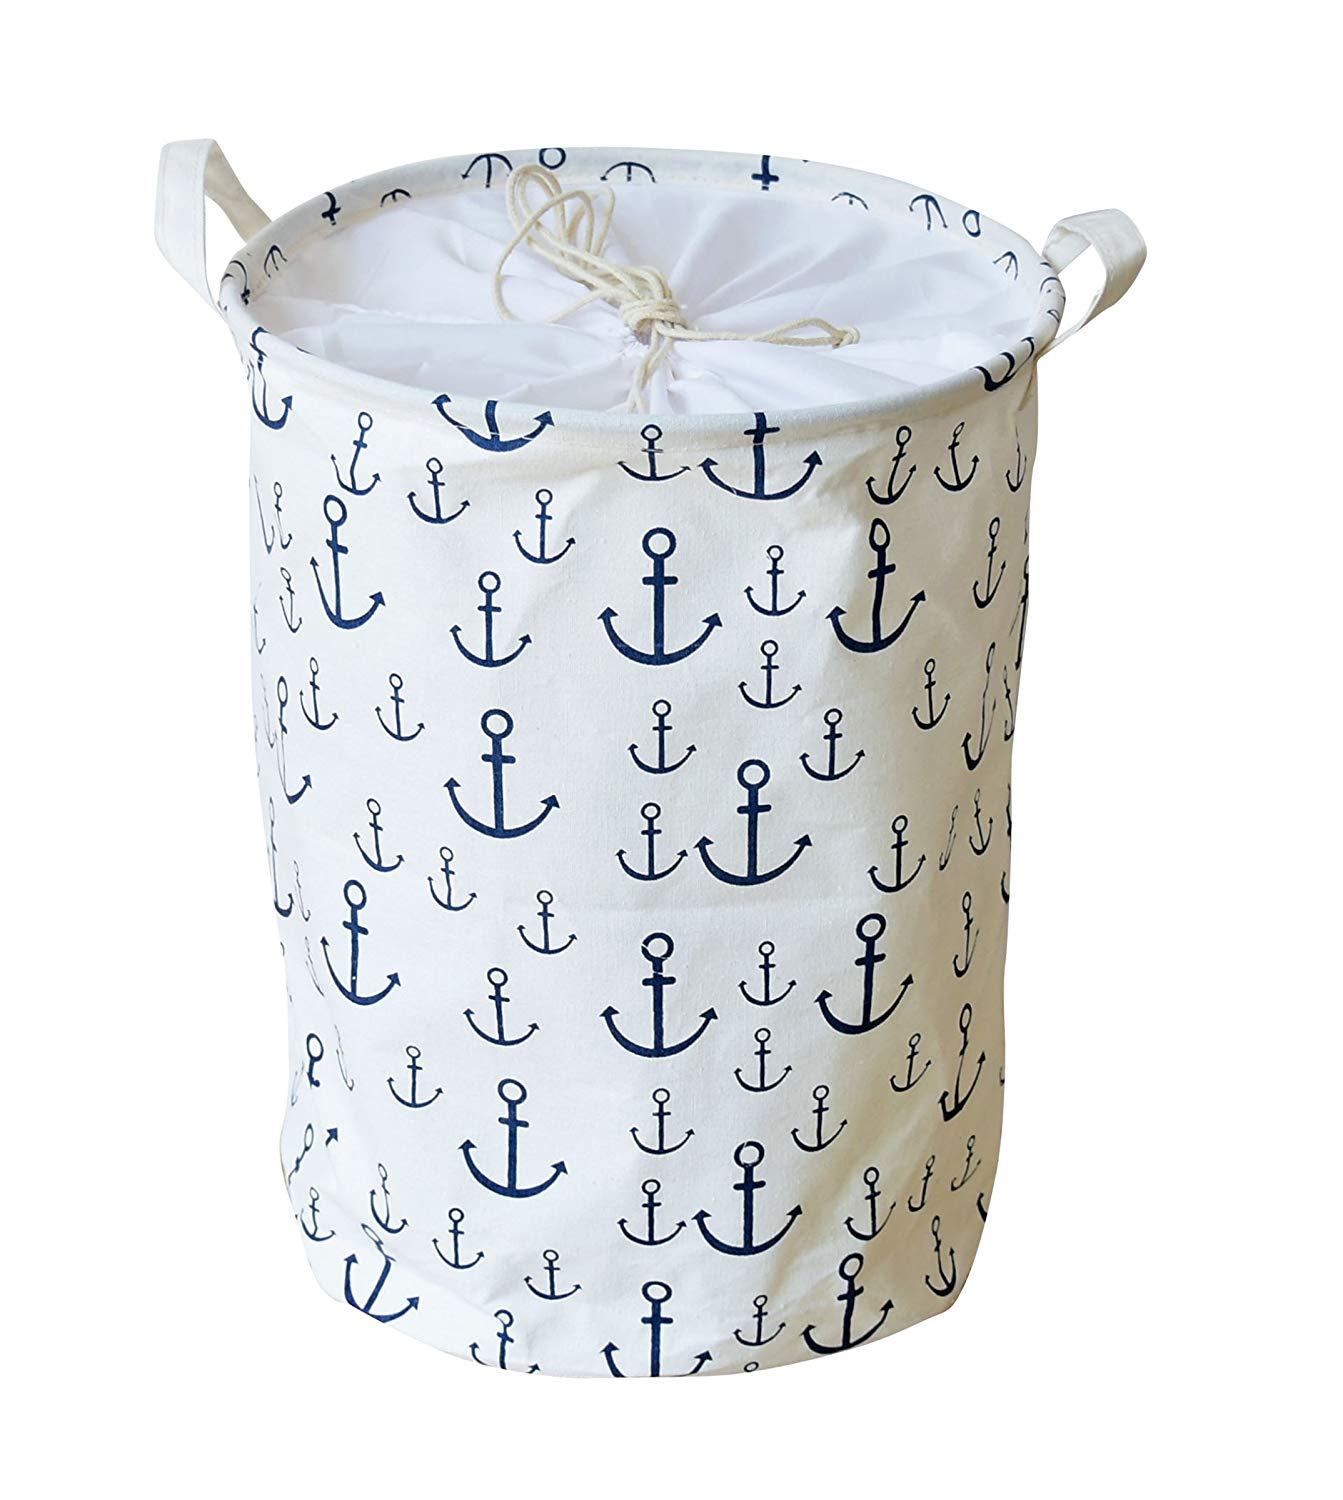 Baby Hamper Nursery Storage Anchor Stripes Large Waterproof Foldable Laundry Hamper Bucket With Handles For Storage Baskets Home Organizer Kids Room Baby Products Nursery